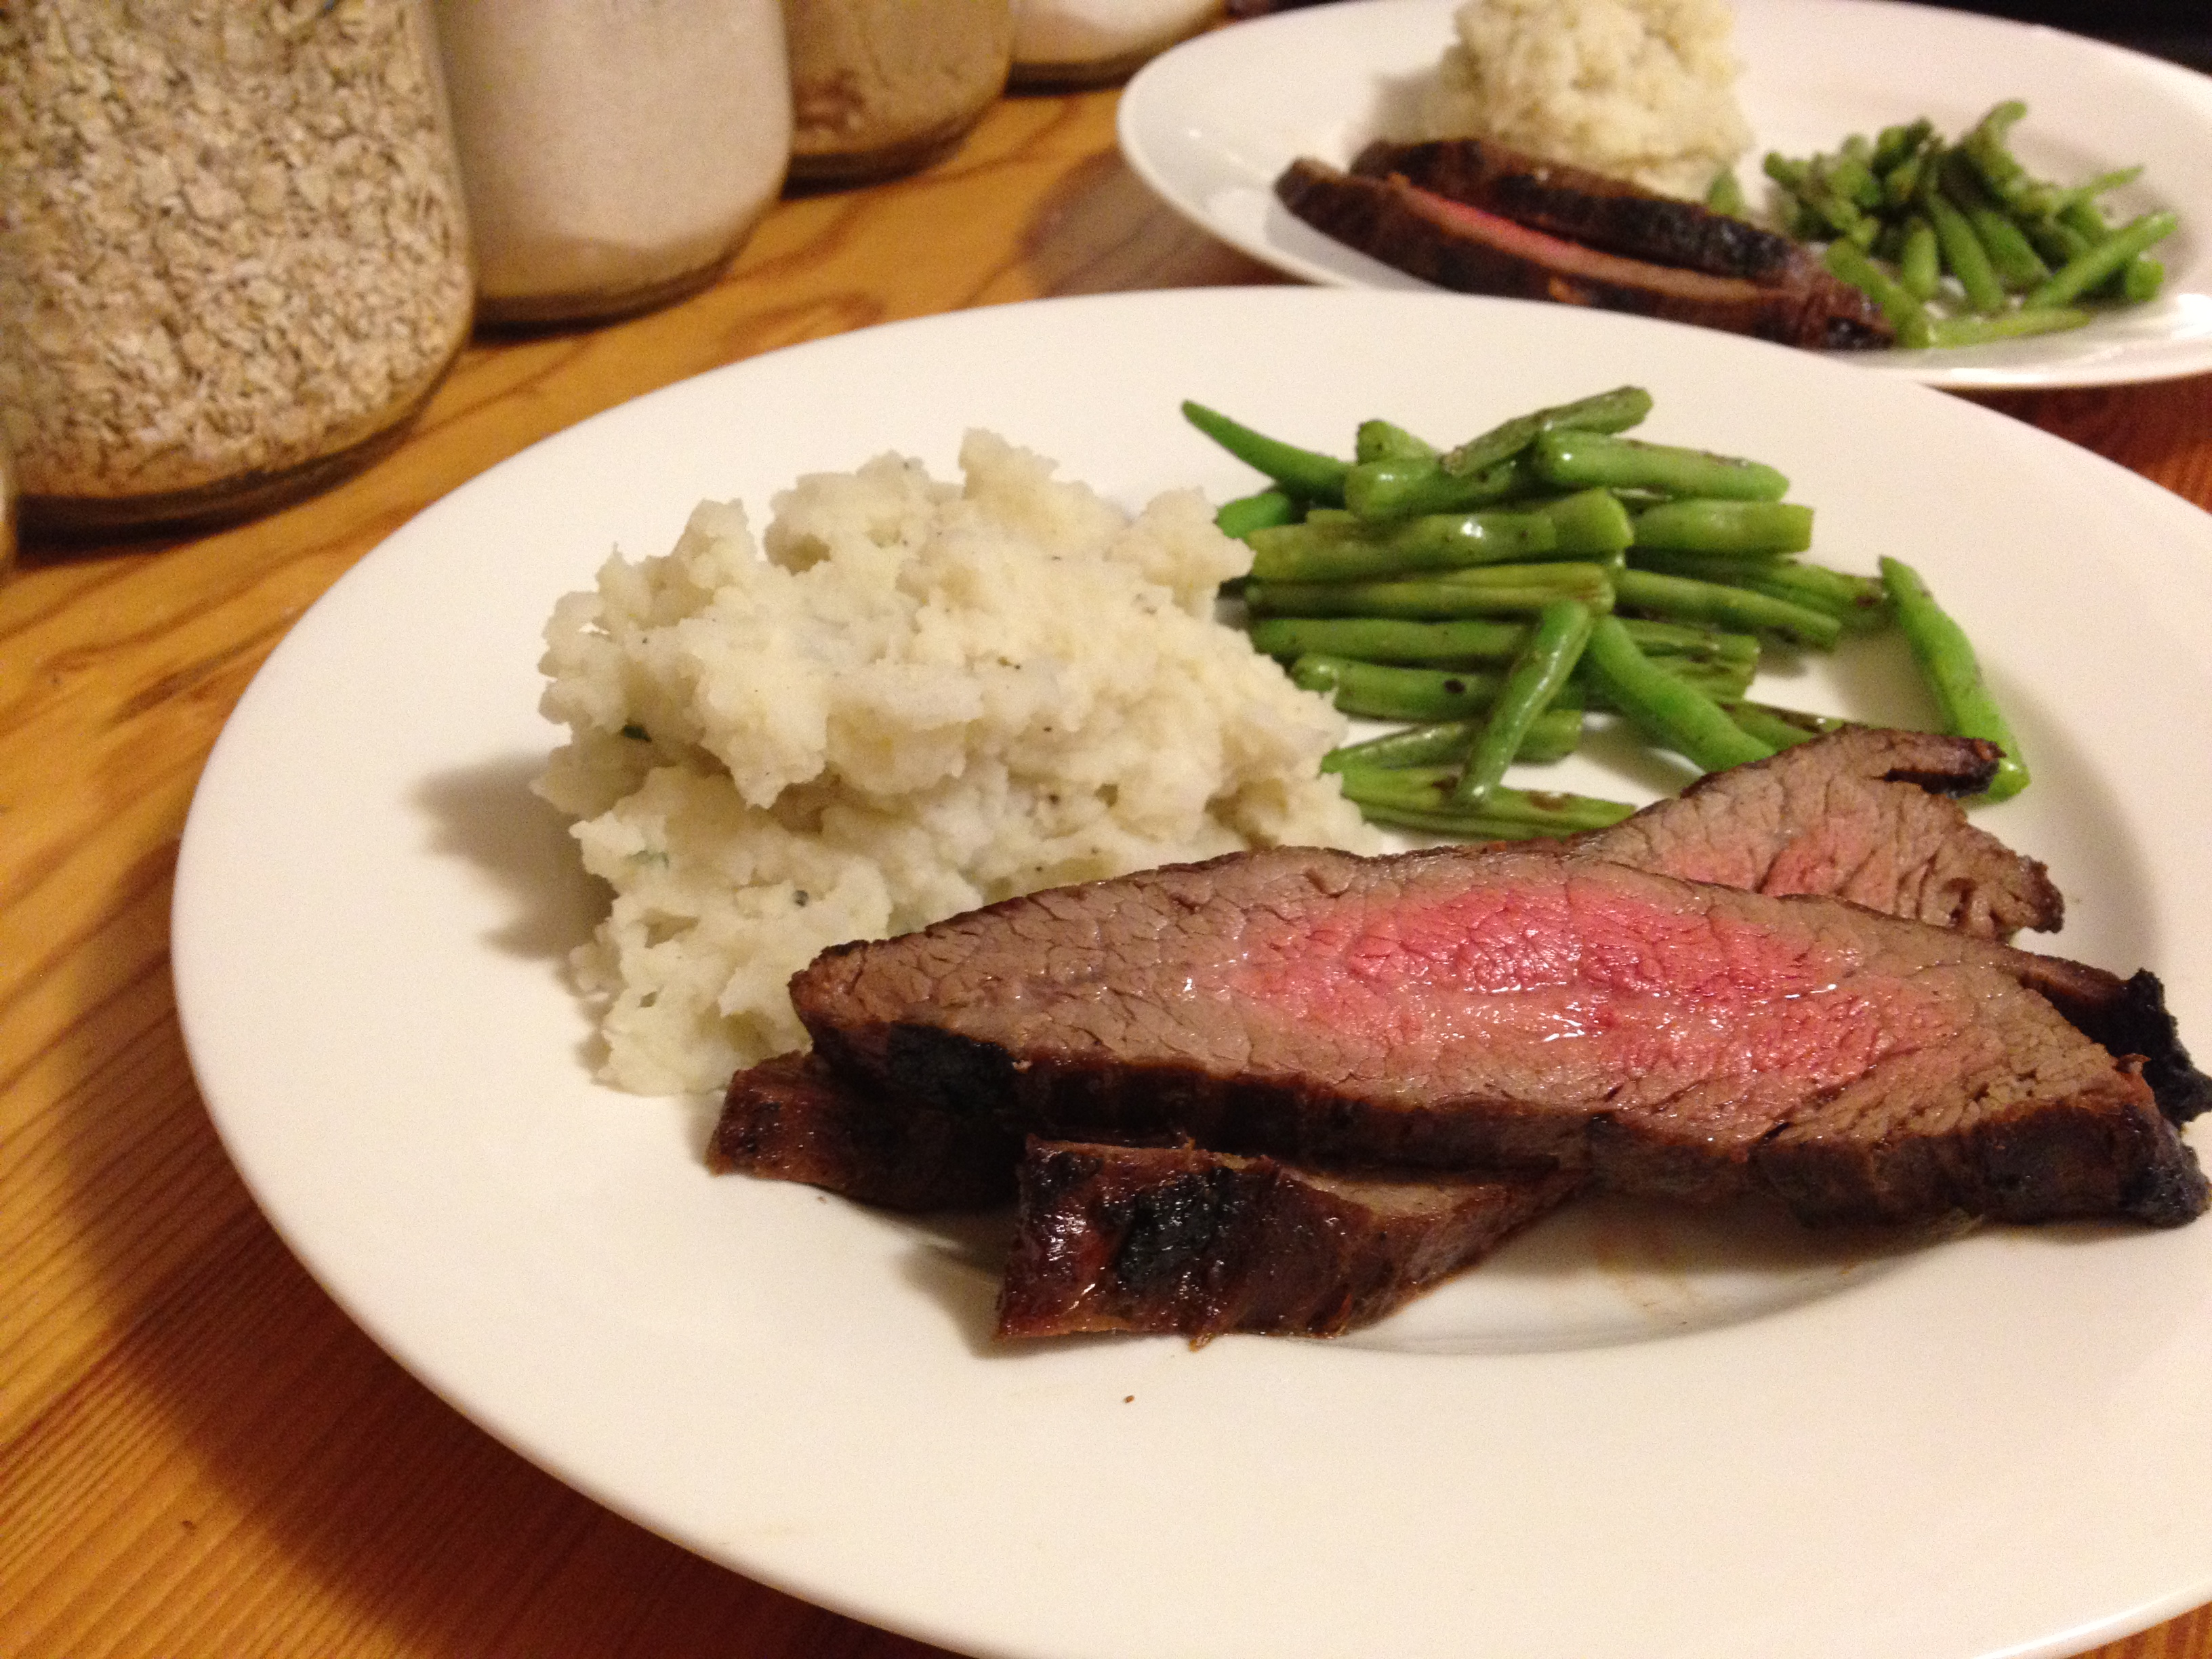 ... Flank Steak with Parmesan Mashed Potatoes and Garlic Green Beans